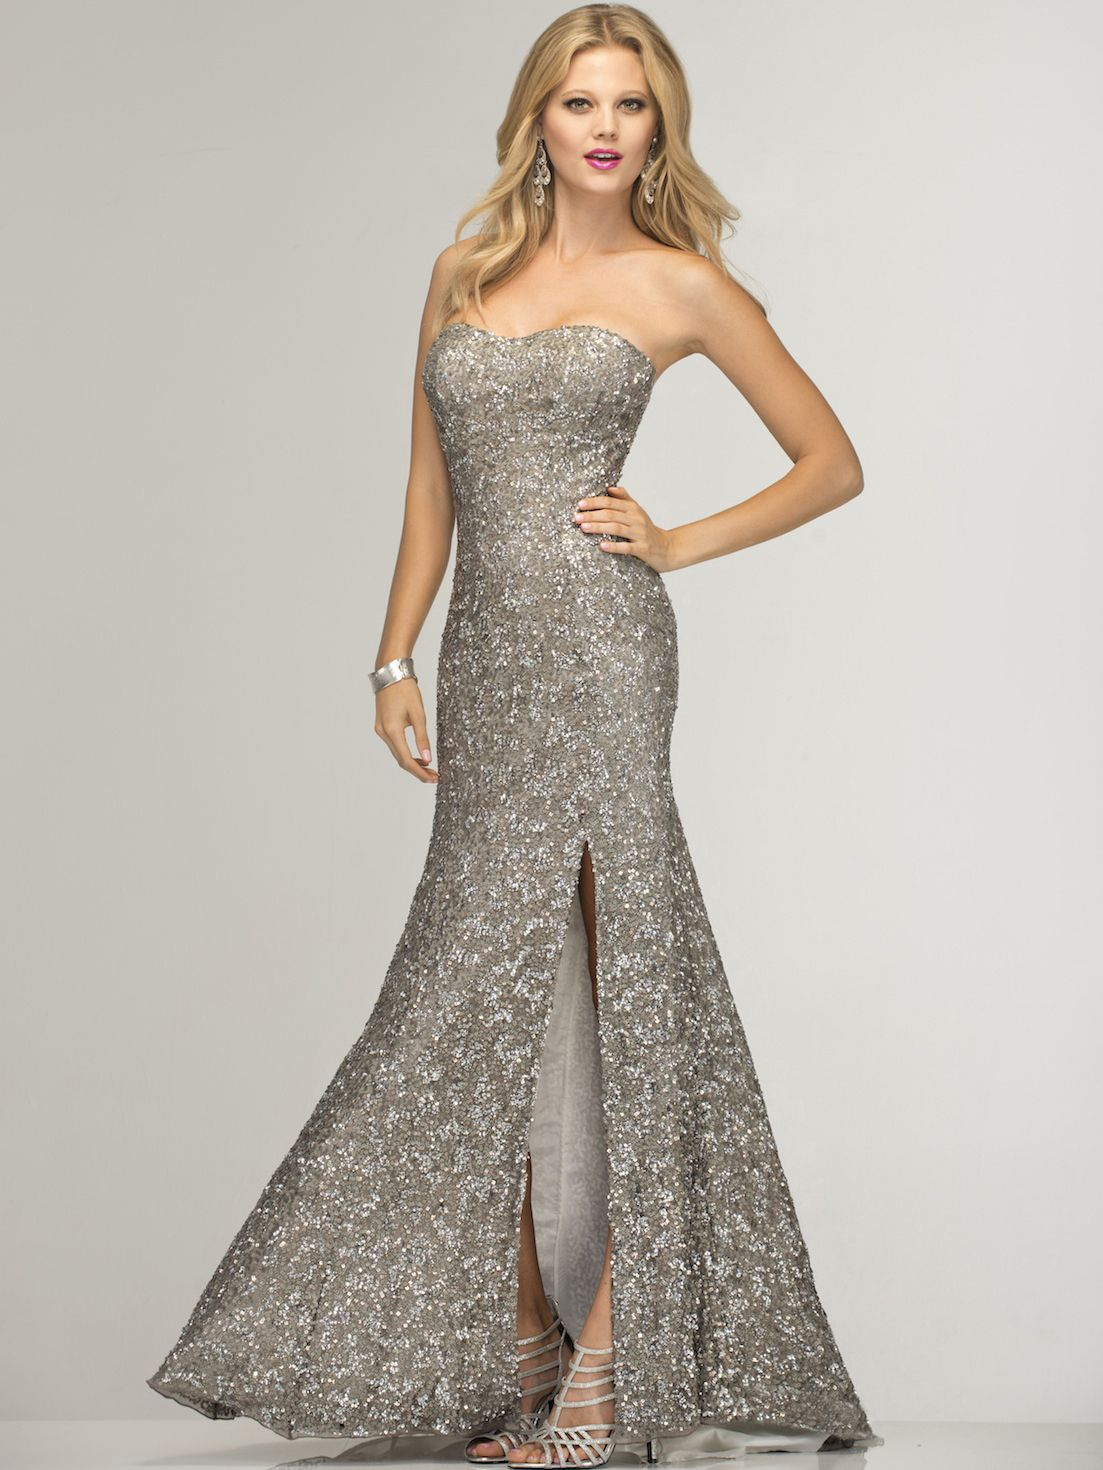 Pin by samantha on gowns pinterest silver formal dresses gowns